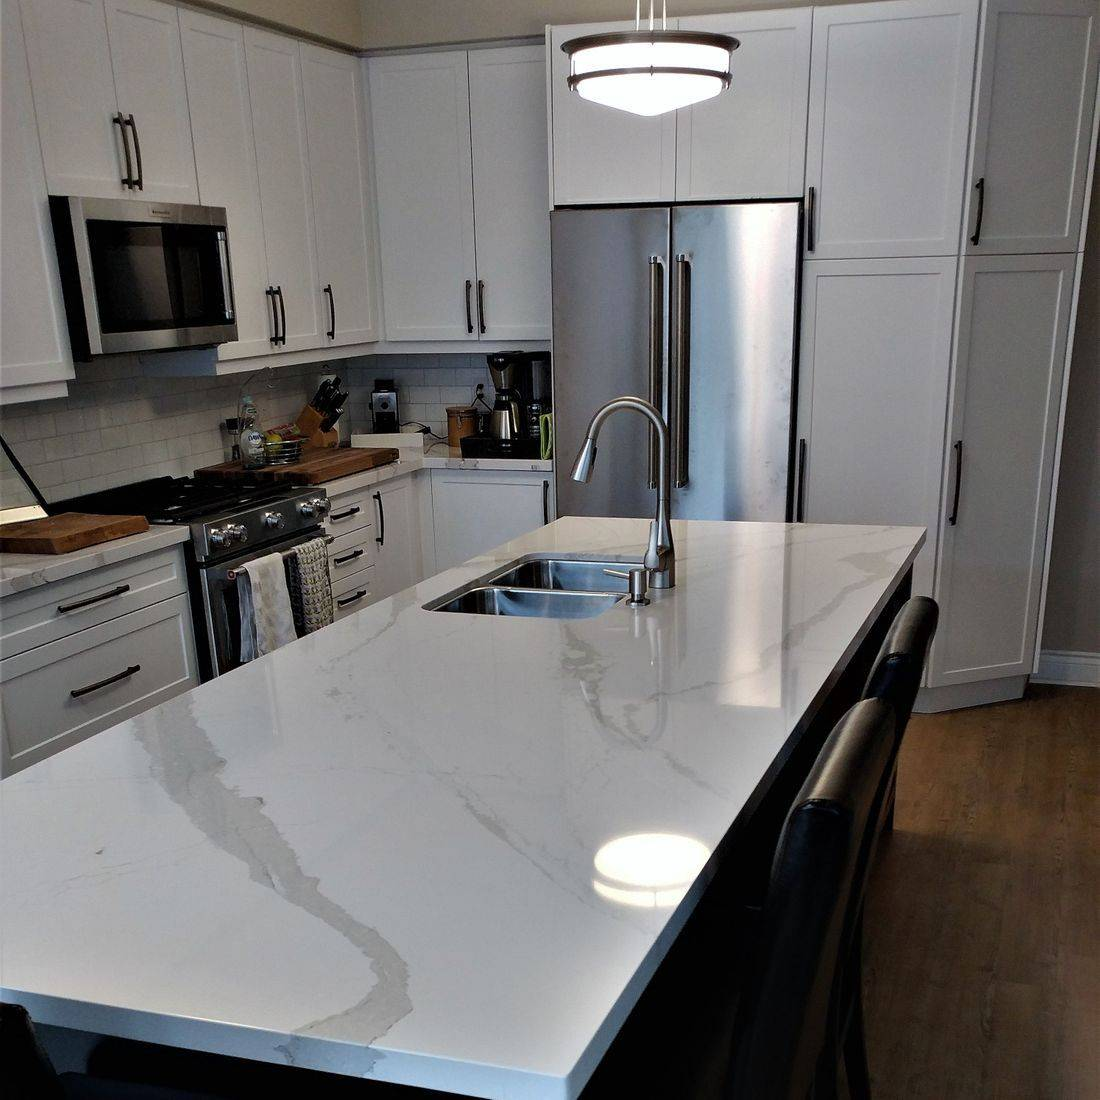 Sibra Kitchens Markham Toronto quartz white black thermofoil shaker cabinets